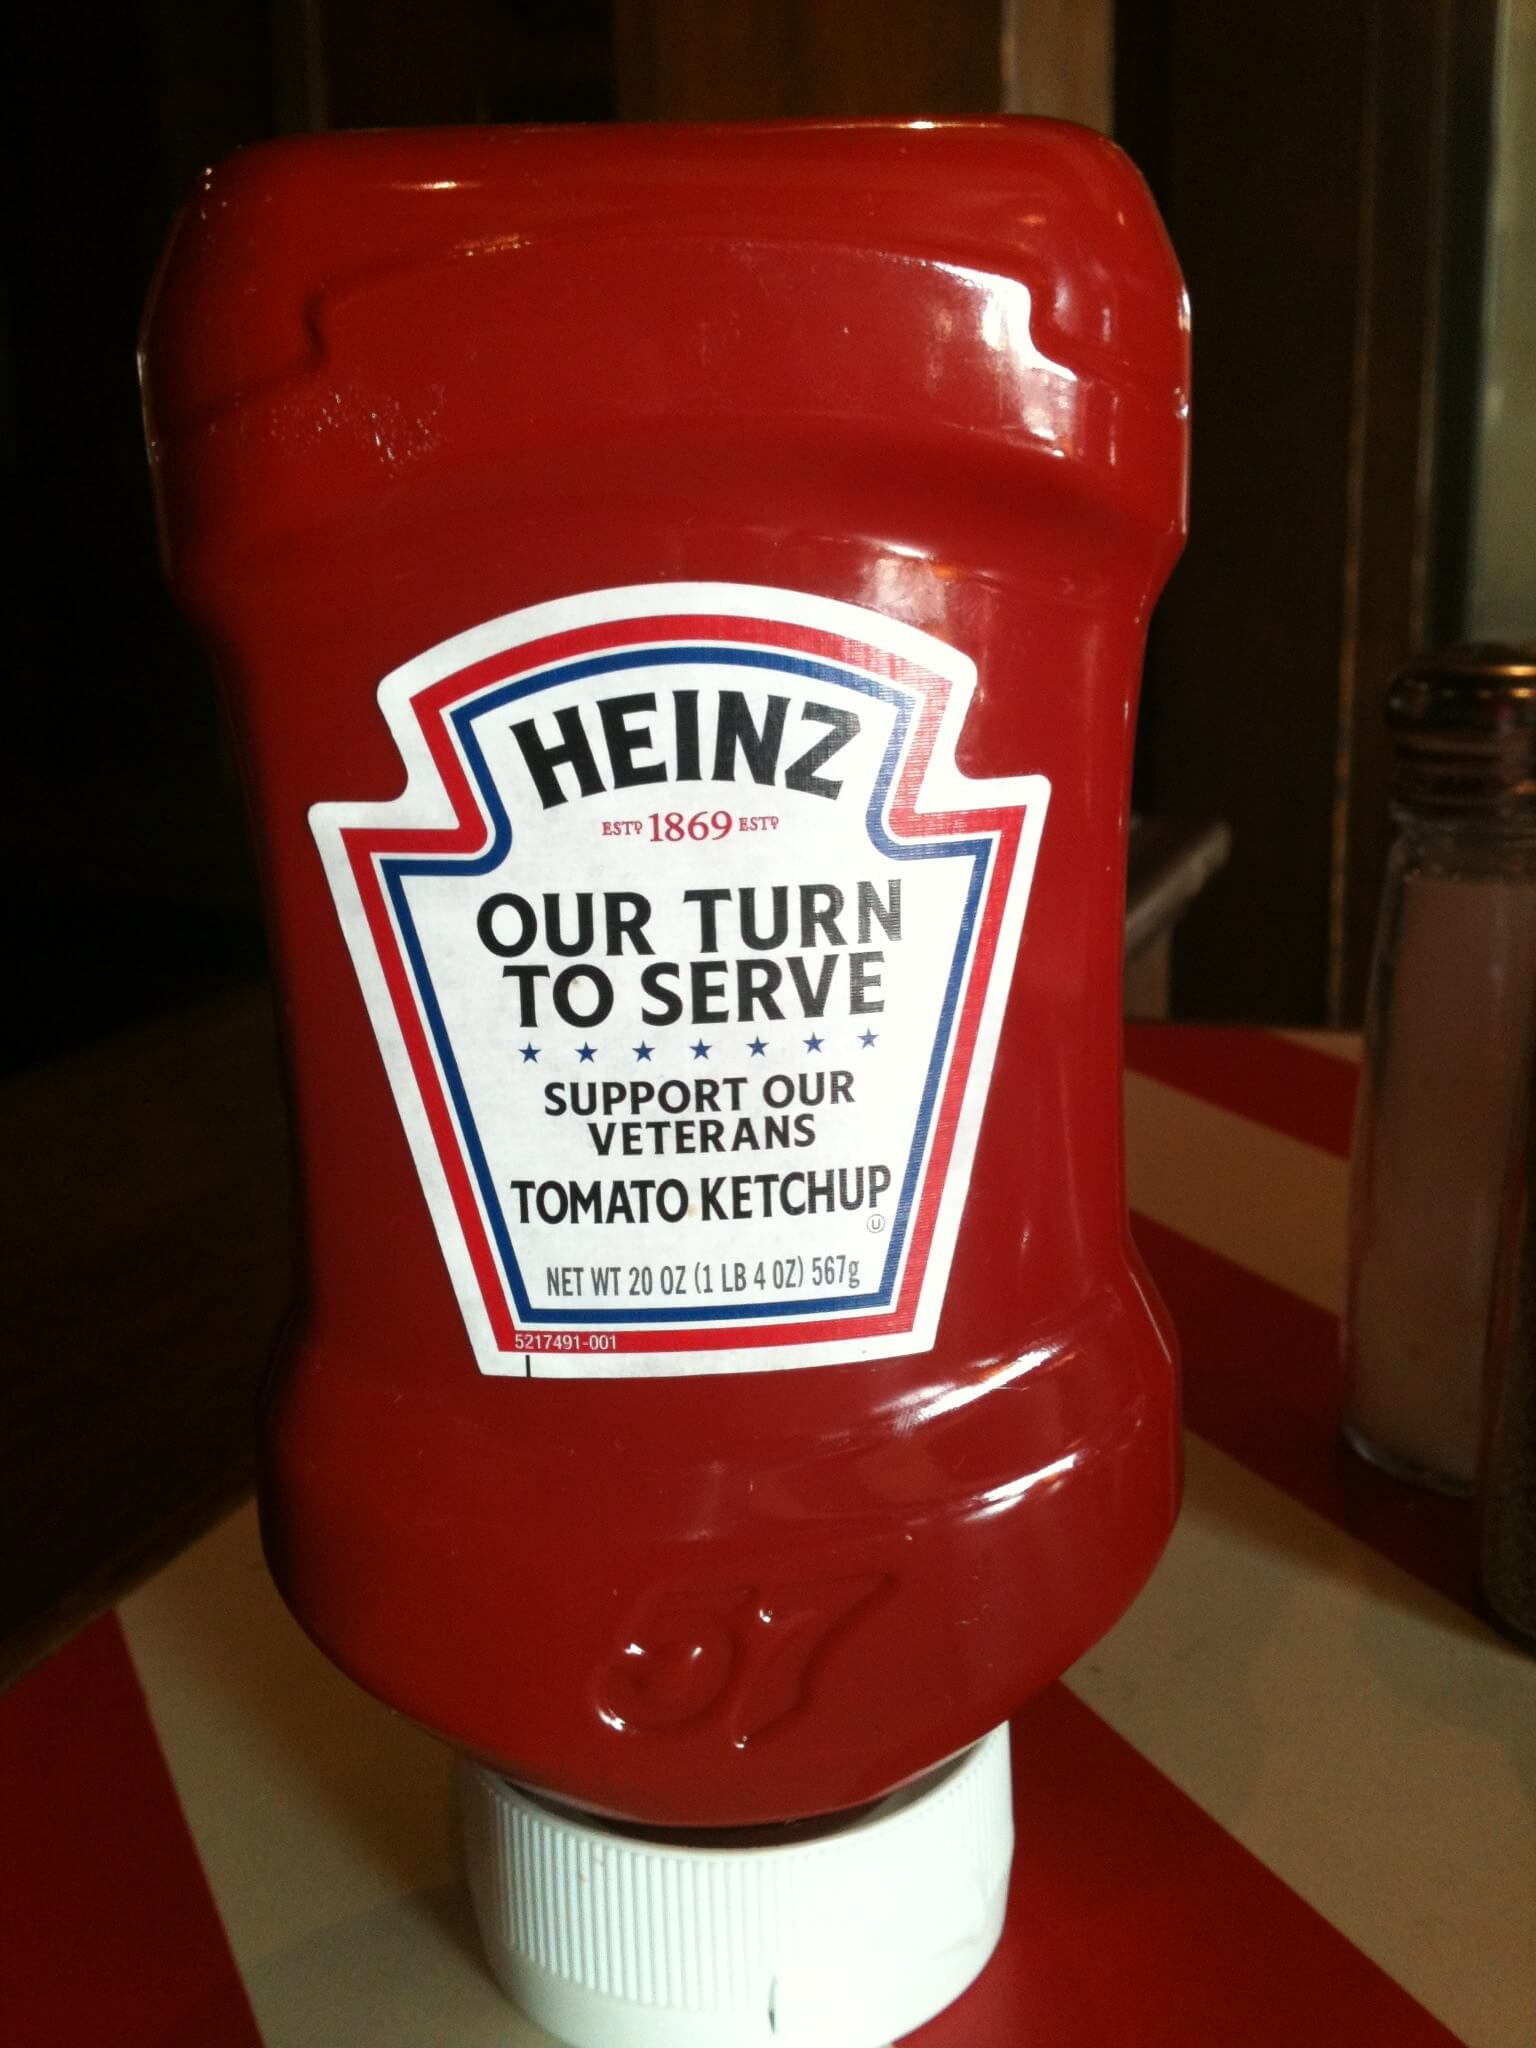 Heinz message on Packaging is Part of Product or Promotion